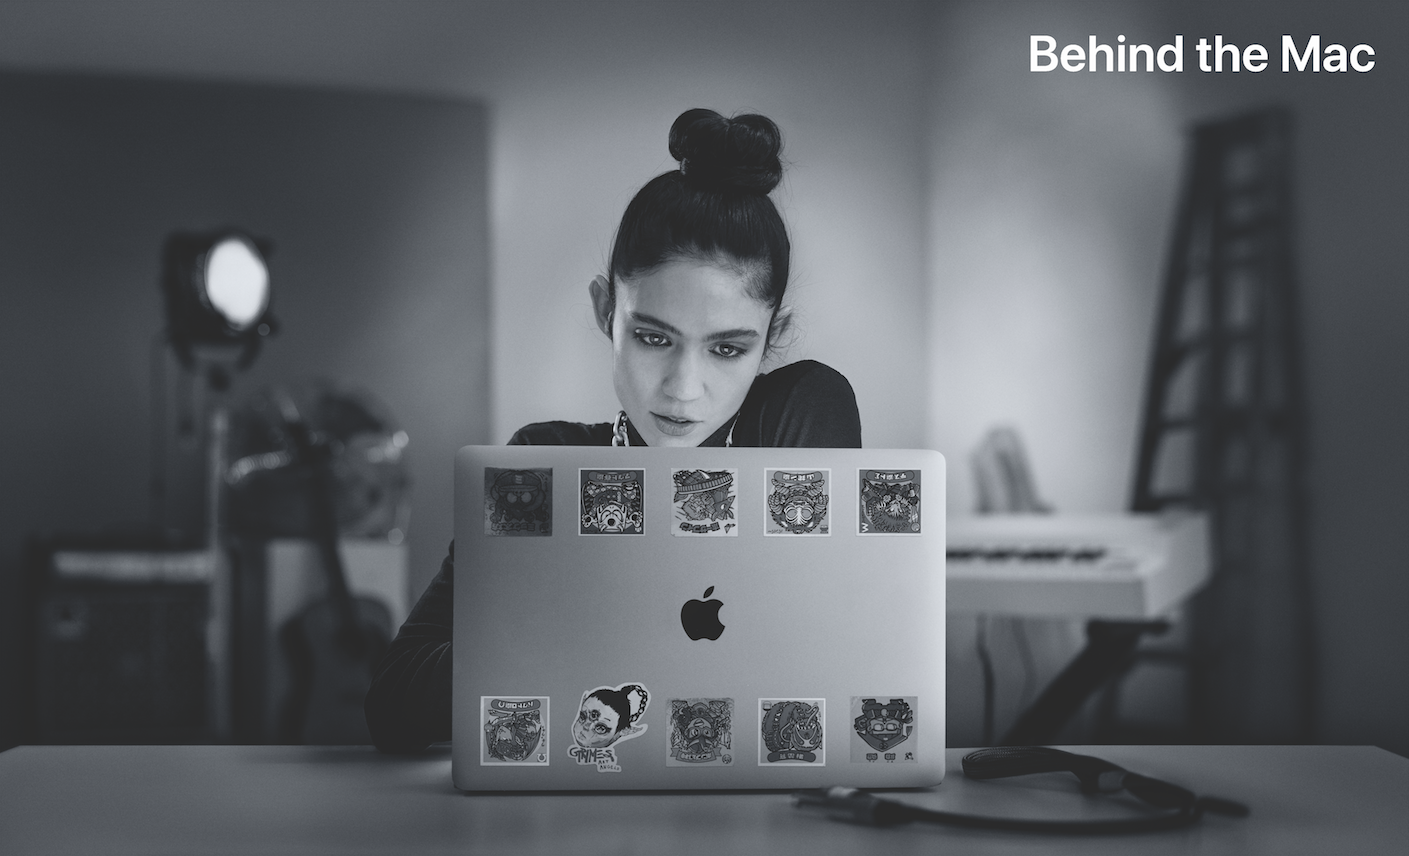 Thumbnail for Behind the Mac